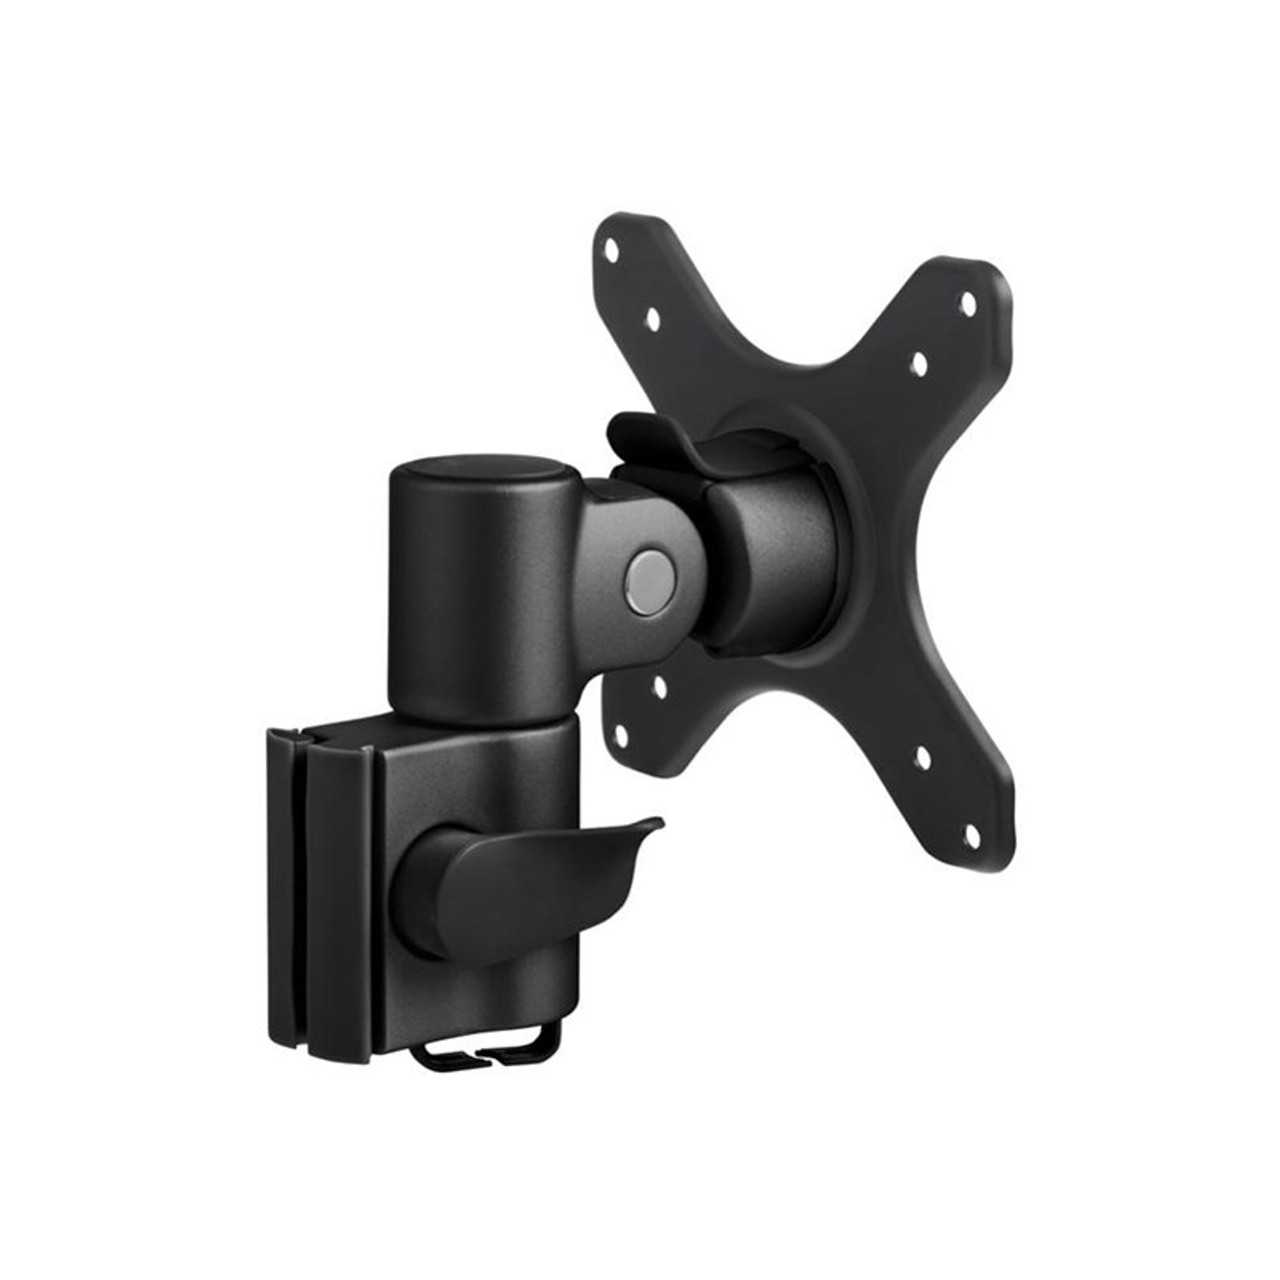 Image for Atdec AWM-A13 130mm Monitor Arm Black - Black CX Computer Superstore